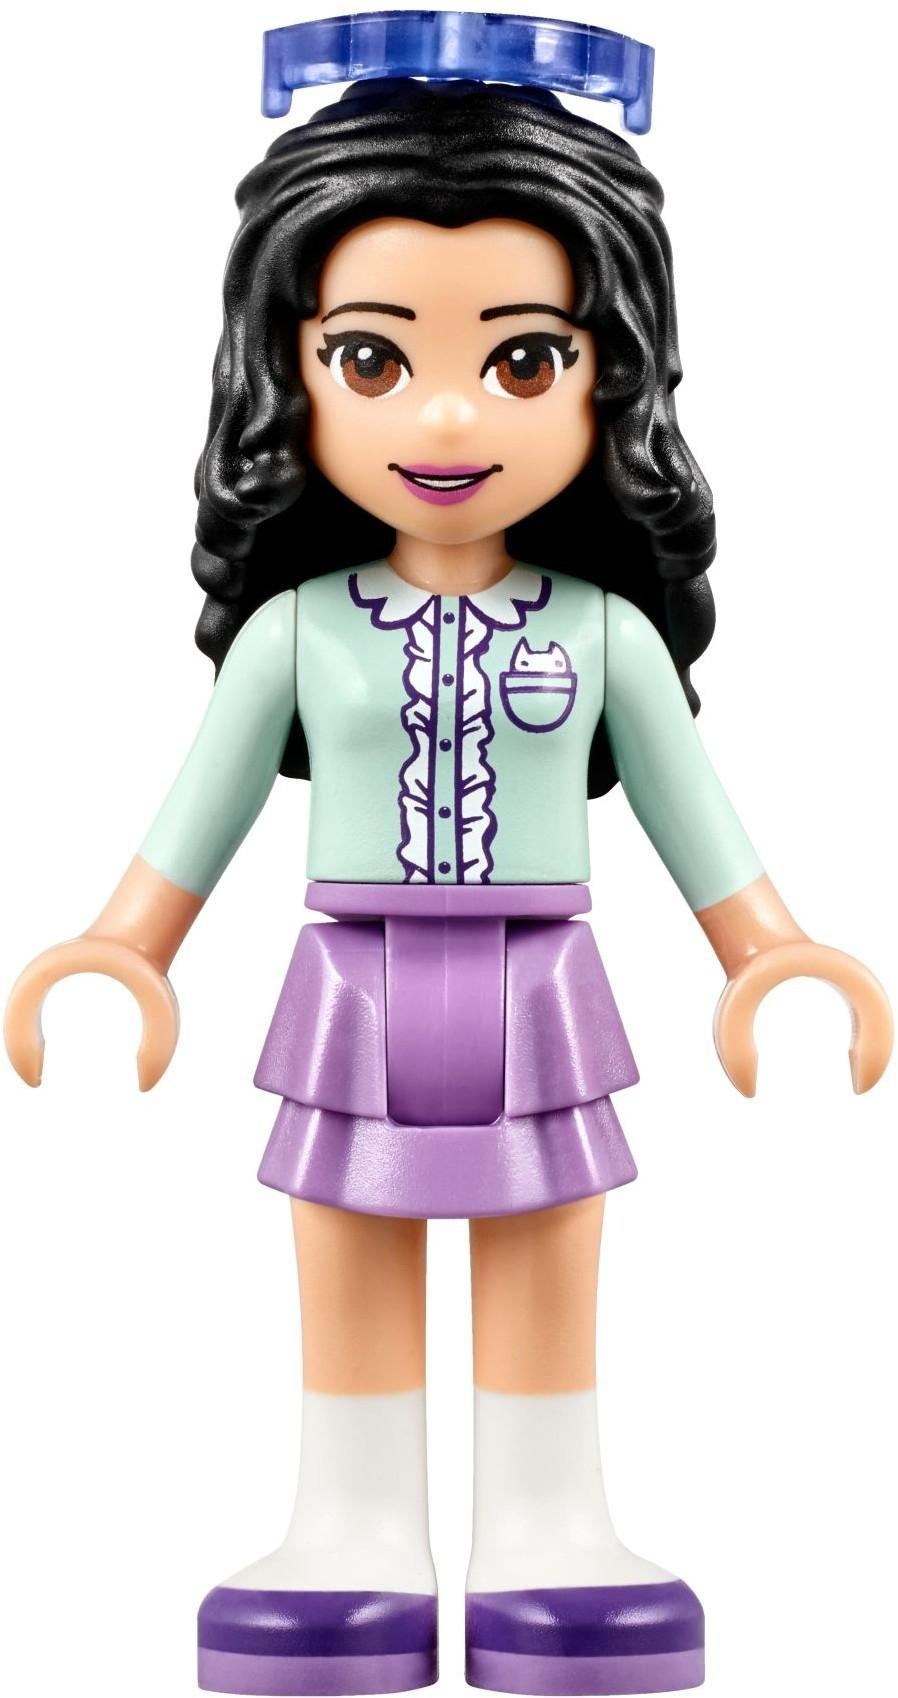 hight resolution of lego friends emmas art stand clipart lego 41008 friends heartlake city pool painting